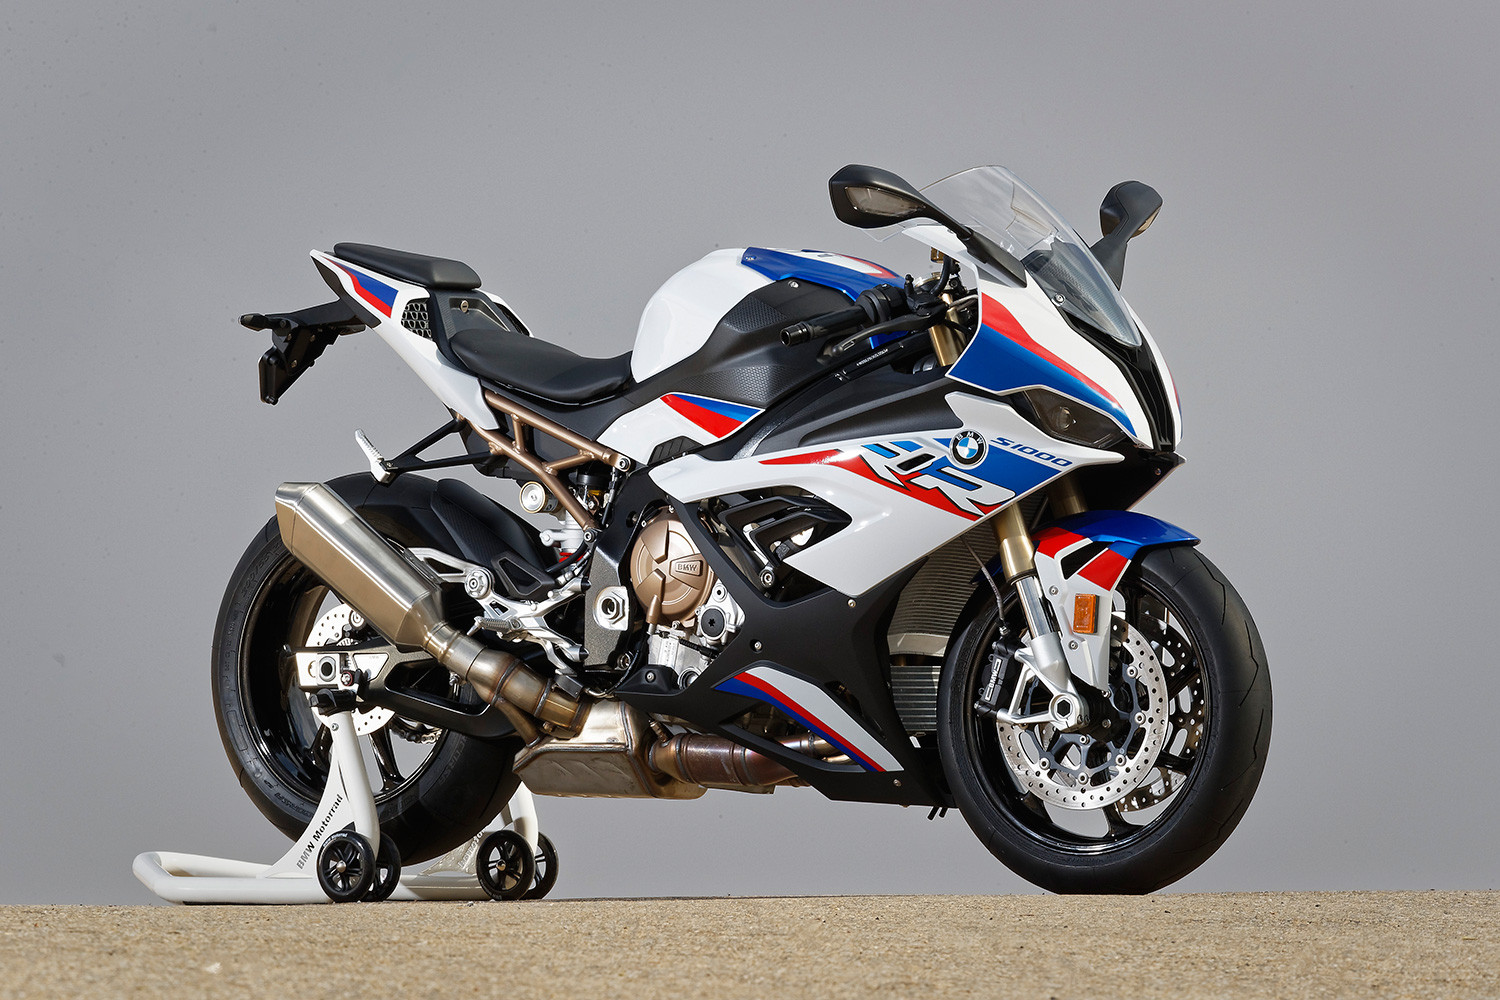 News Dealers Halt Deliveries Of New Bmw S1000rr Adrenaline Culture Of Motorcycle And Speed